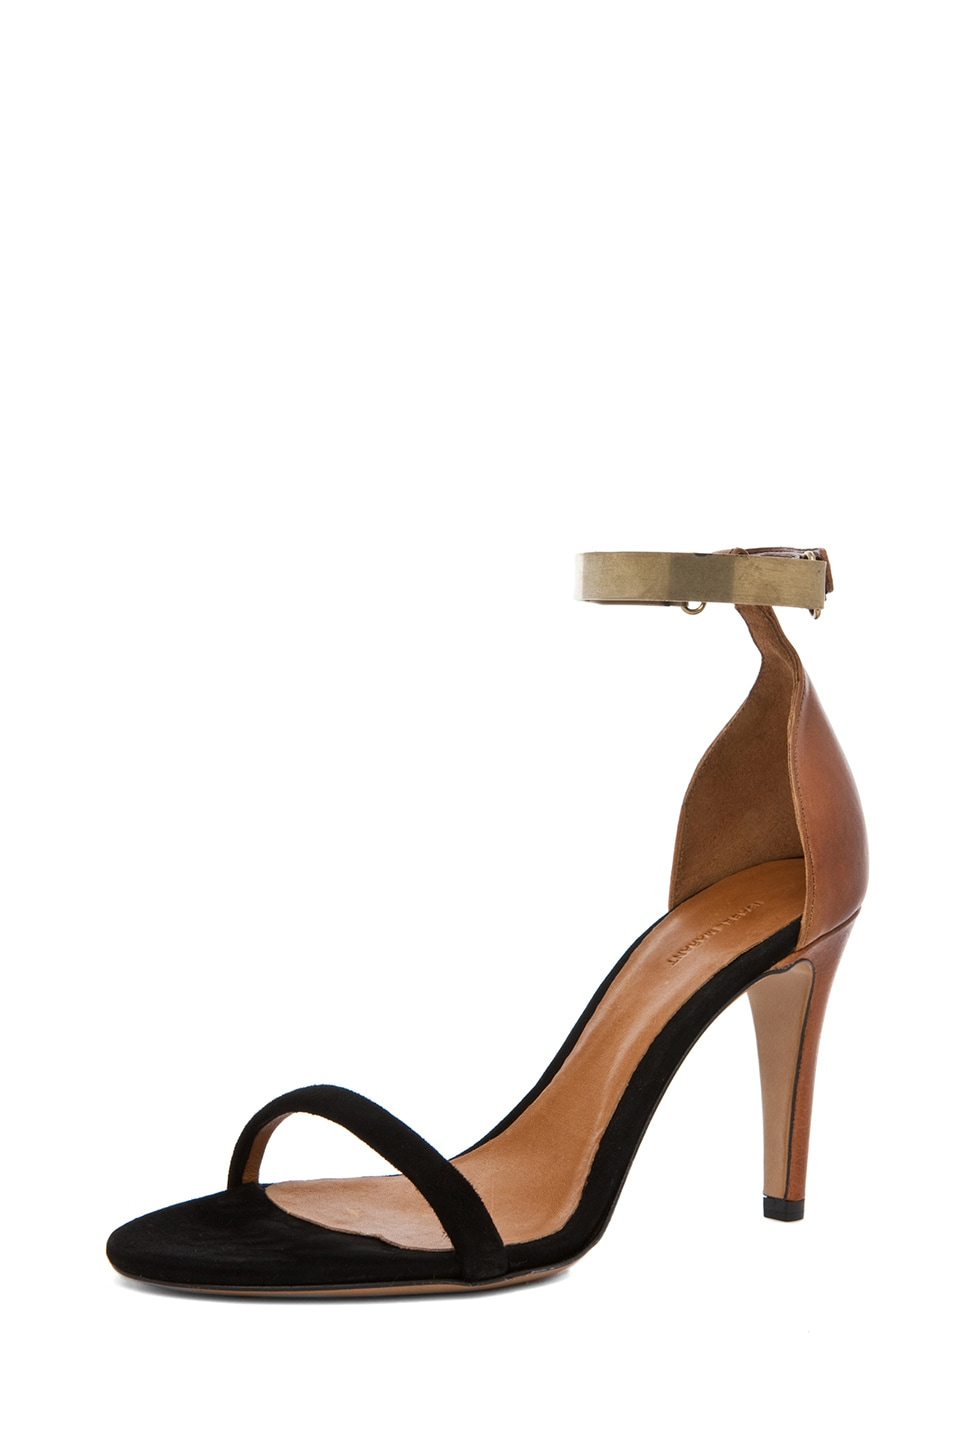 Image 2 of Isabel Marant Adele Heel in Black